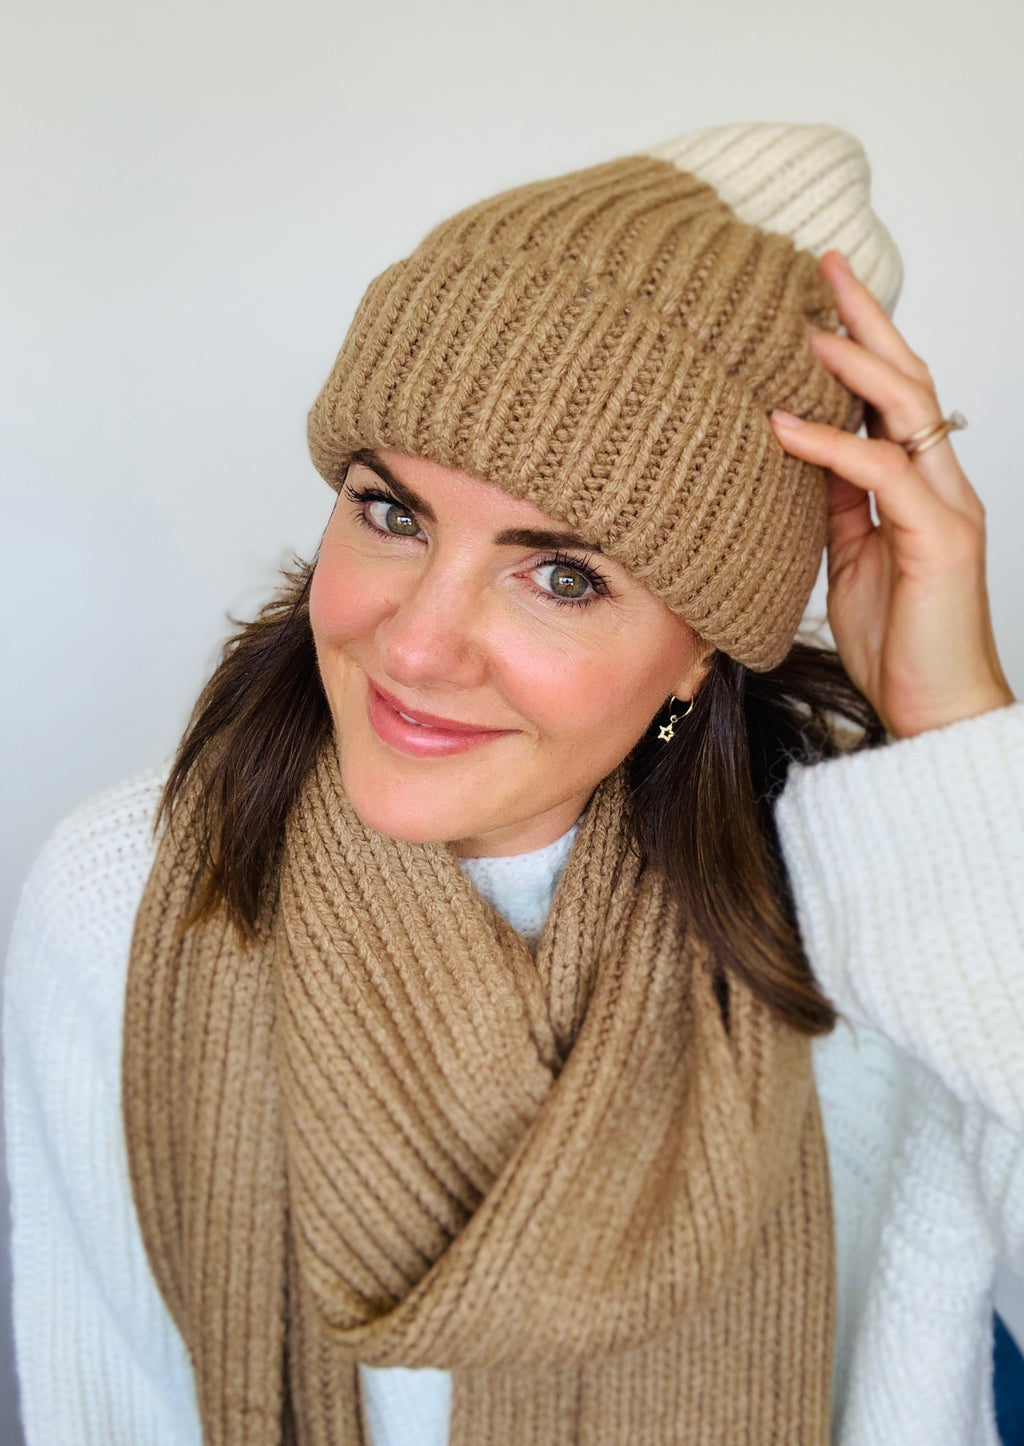 The Beanie Babe Hat is our latest obsession with its cozy rib sweater knit detailing.